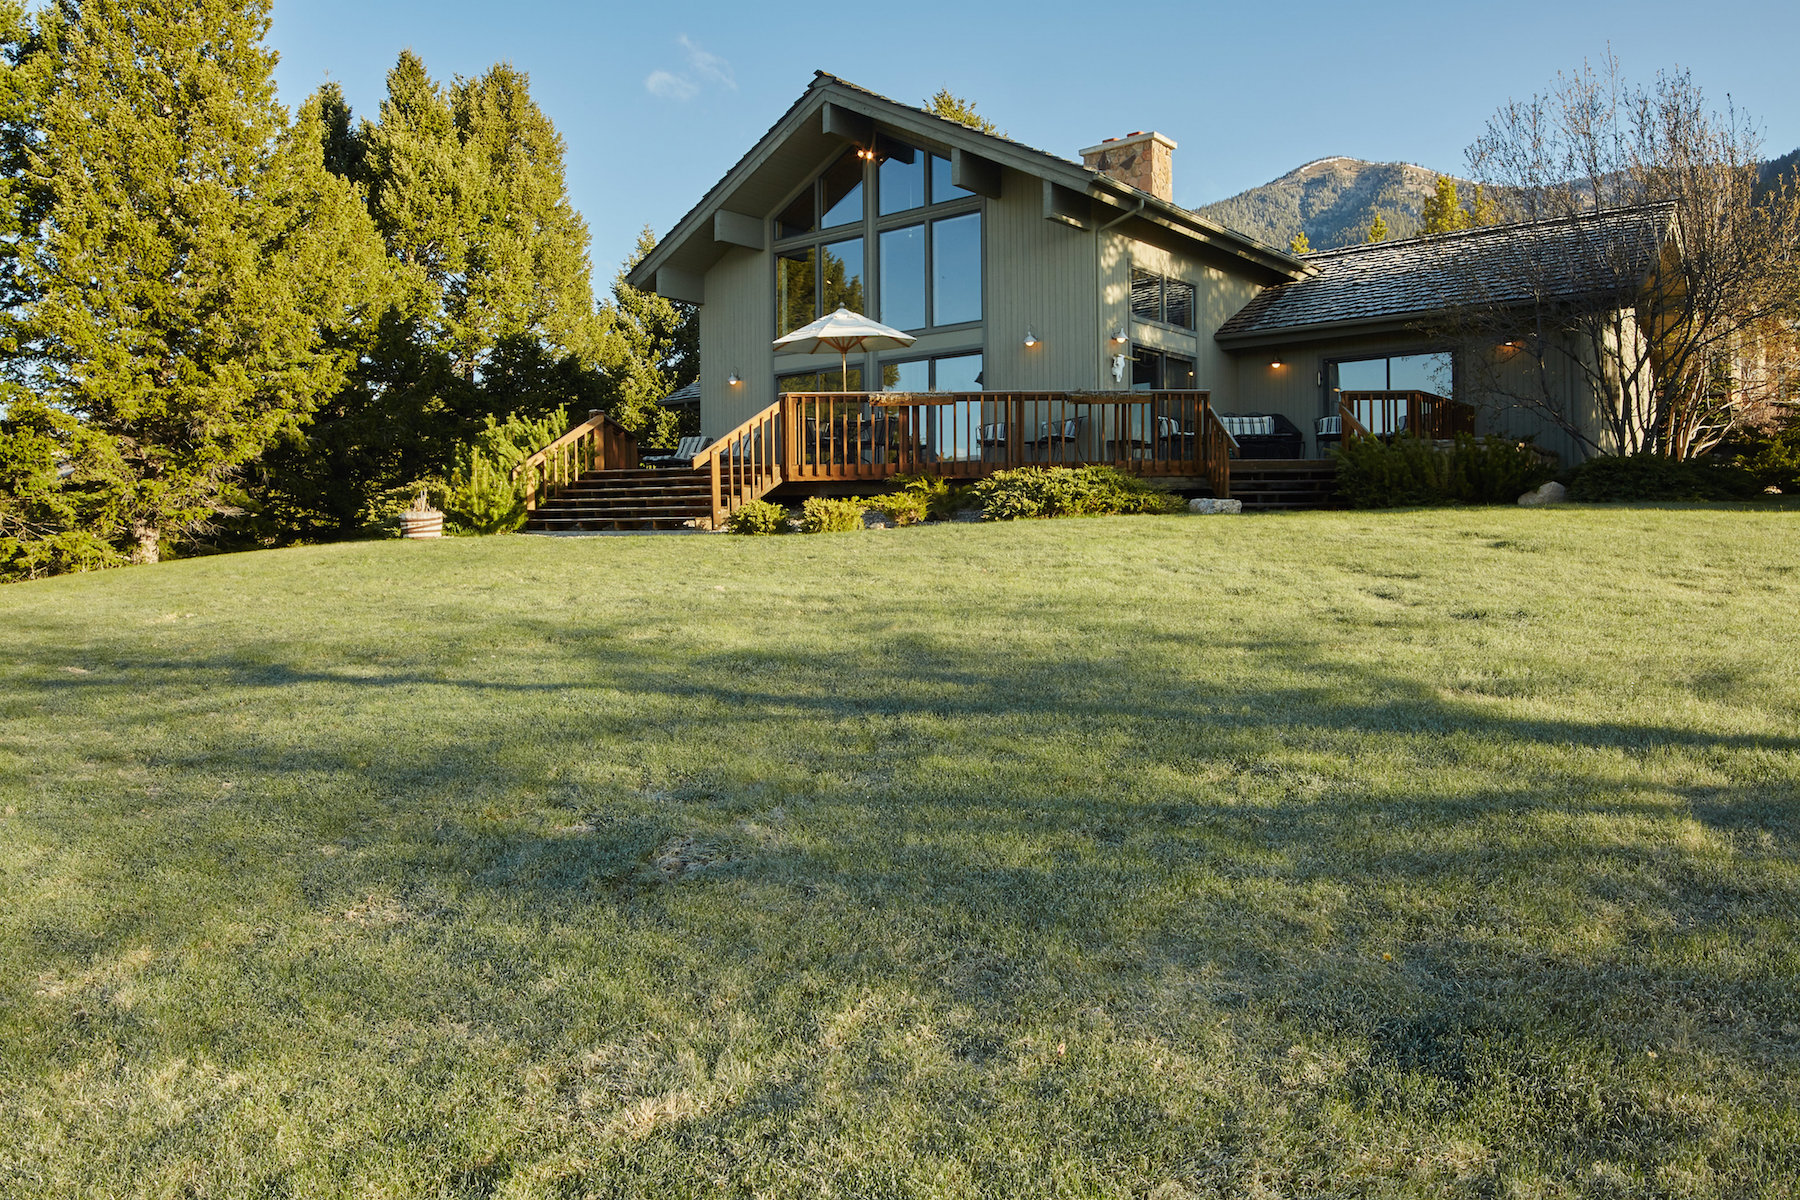 Single Family Home for Sale at 2670 Bobtail Horse Rd 2670 Bobtail Horse Sweetgrass Hills B3 Big Sky, Montana 59716 United States